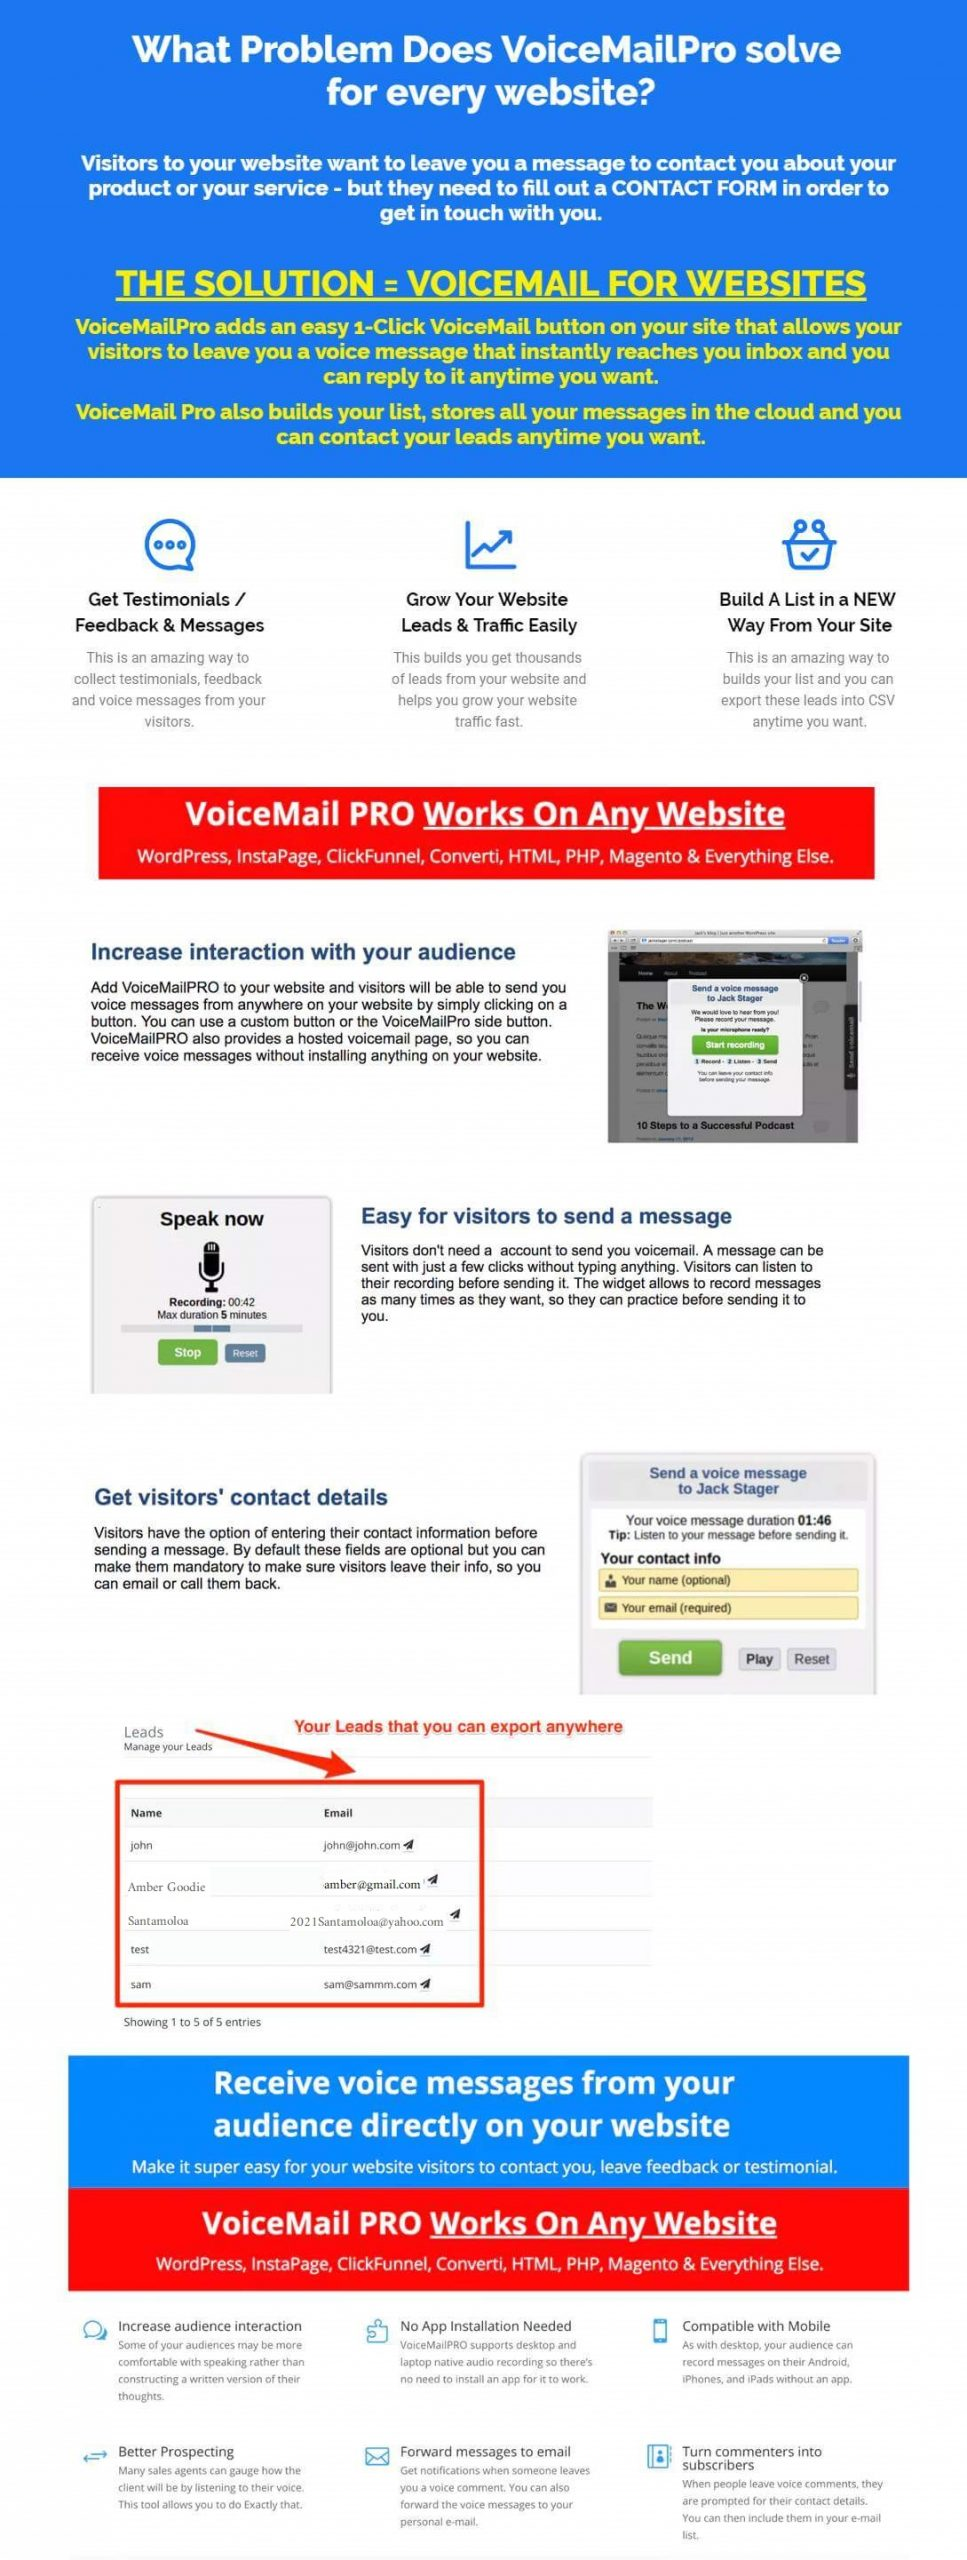 VoiceMail Pro For Websites